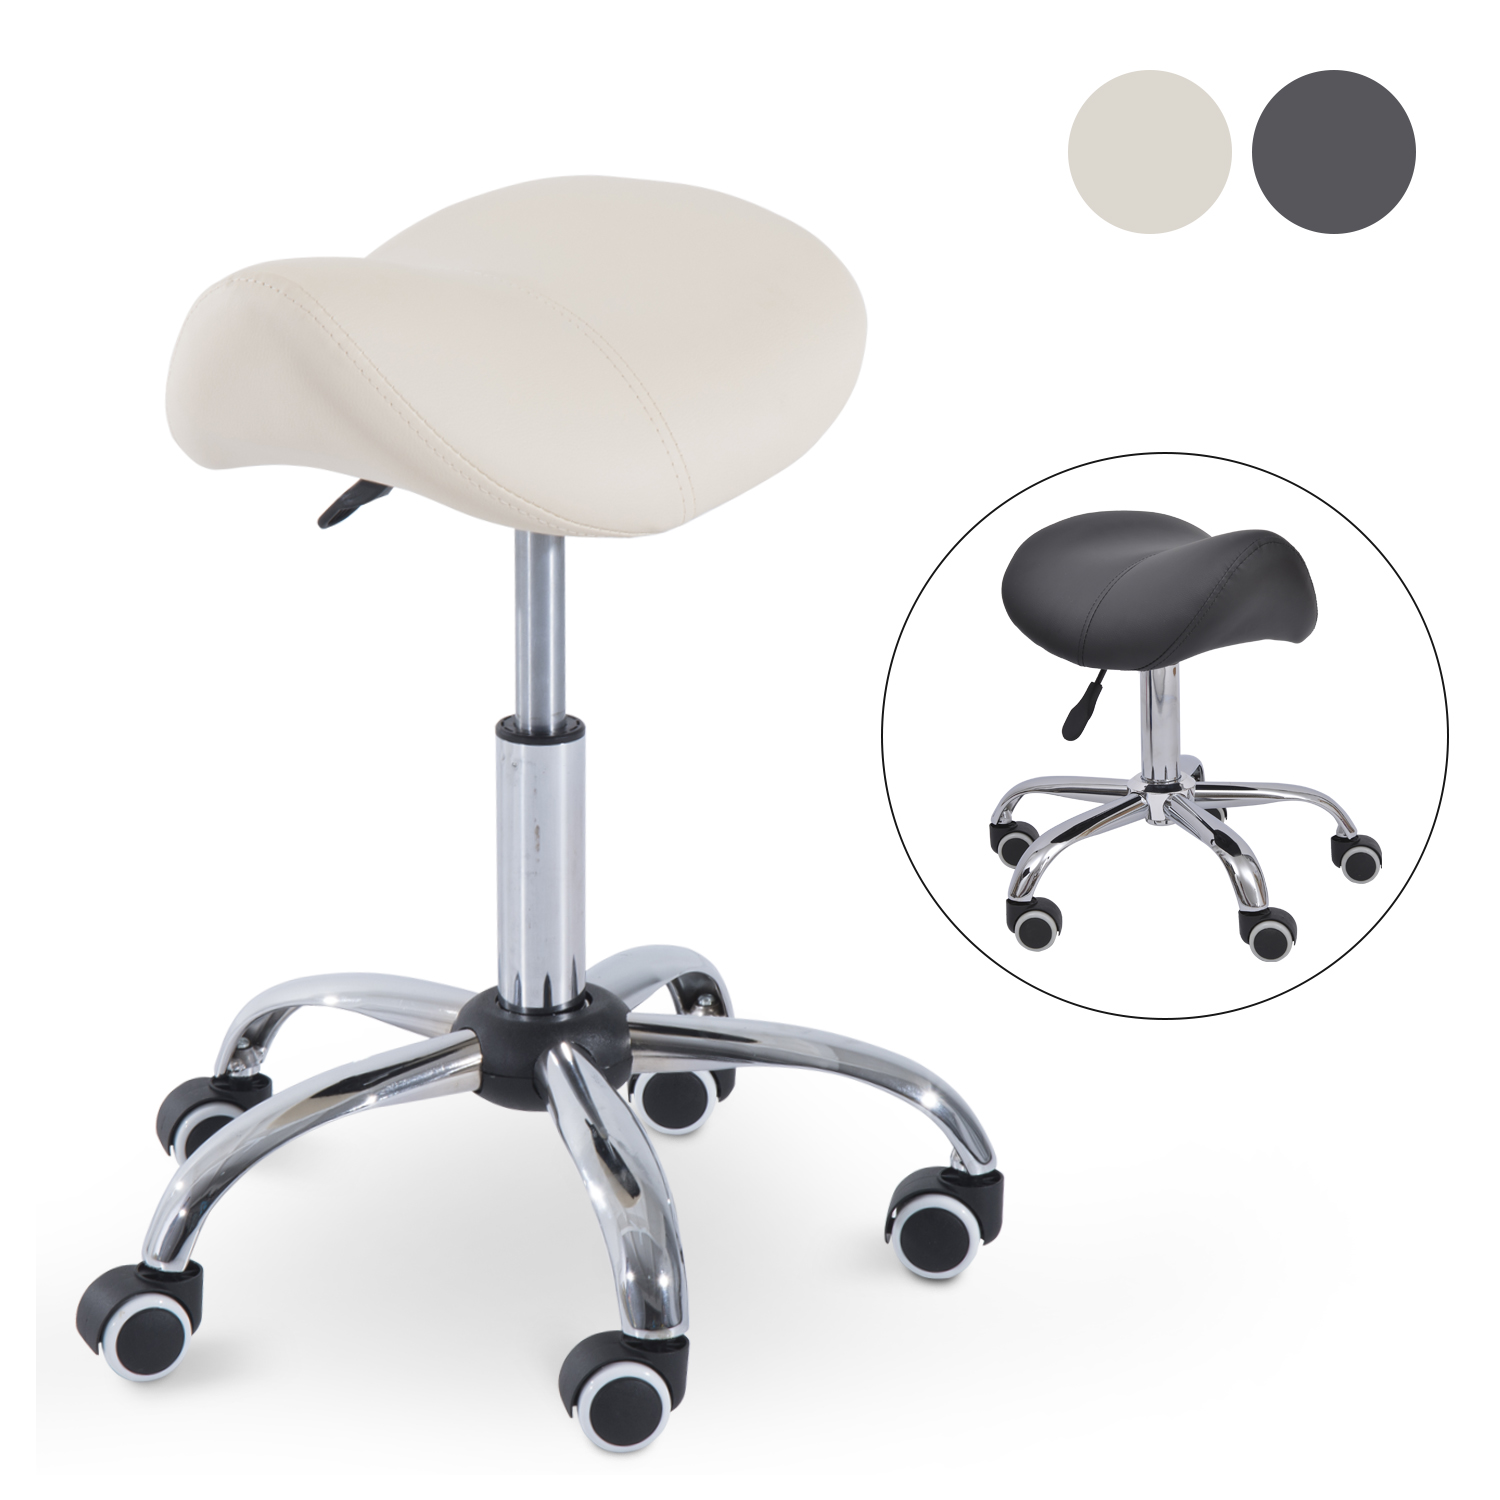 Hydraulic Salon Stool Saddle Chair Adjustable Seat Swivel